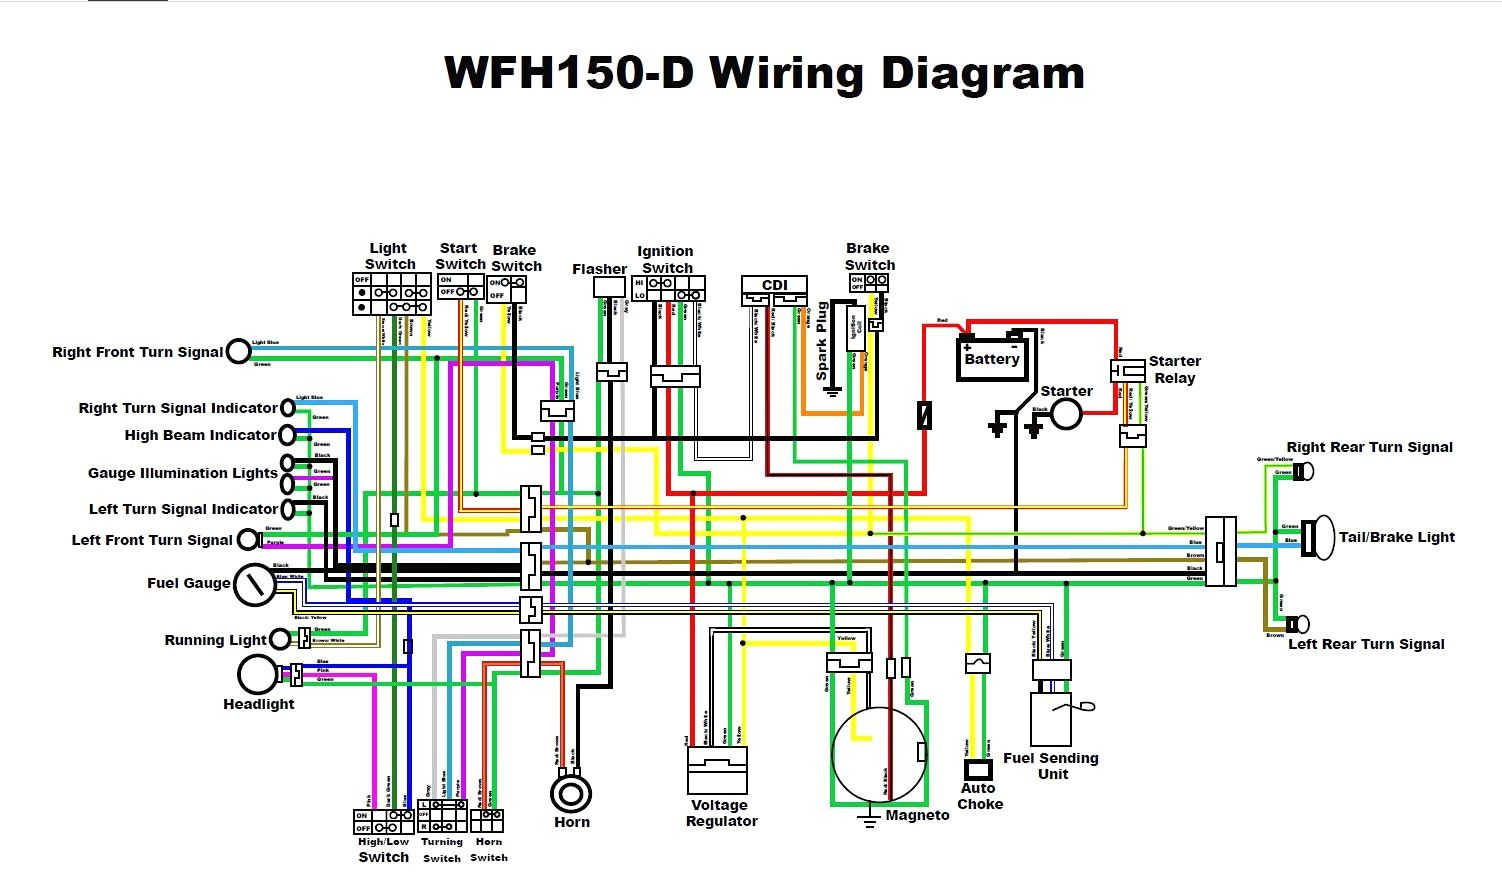 wiring diagram for 150cc gy6 scooter schema wiring diagram preview  wiring diagram for 150cc gy6 scooter #8